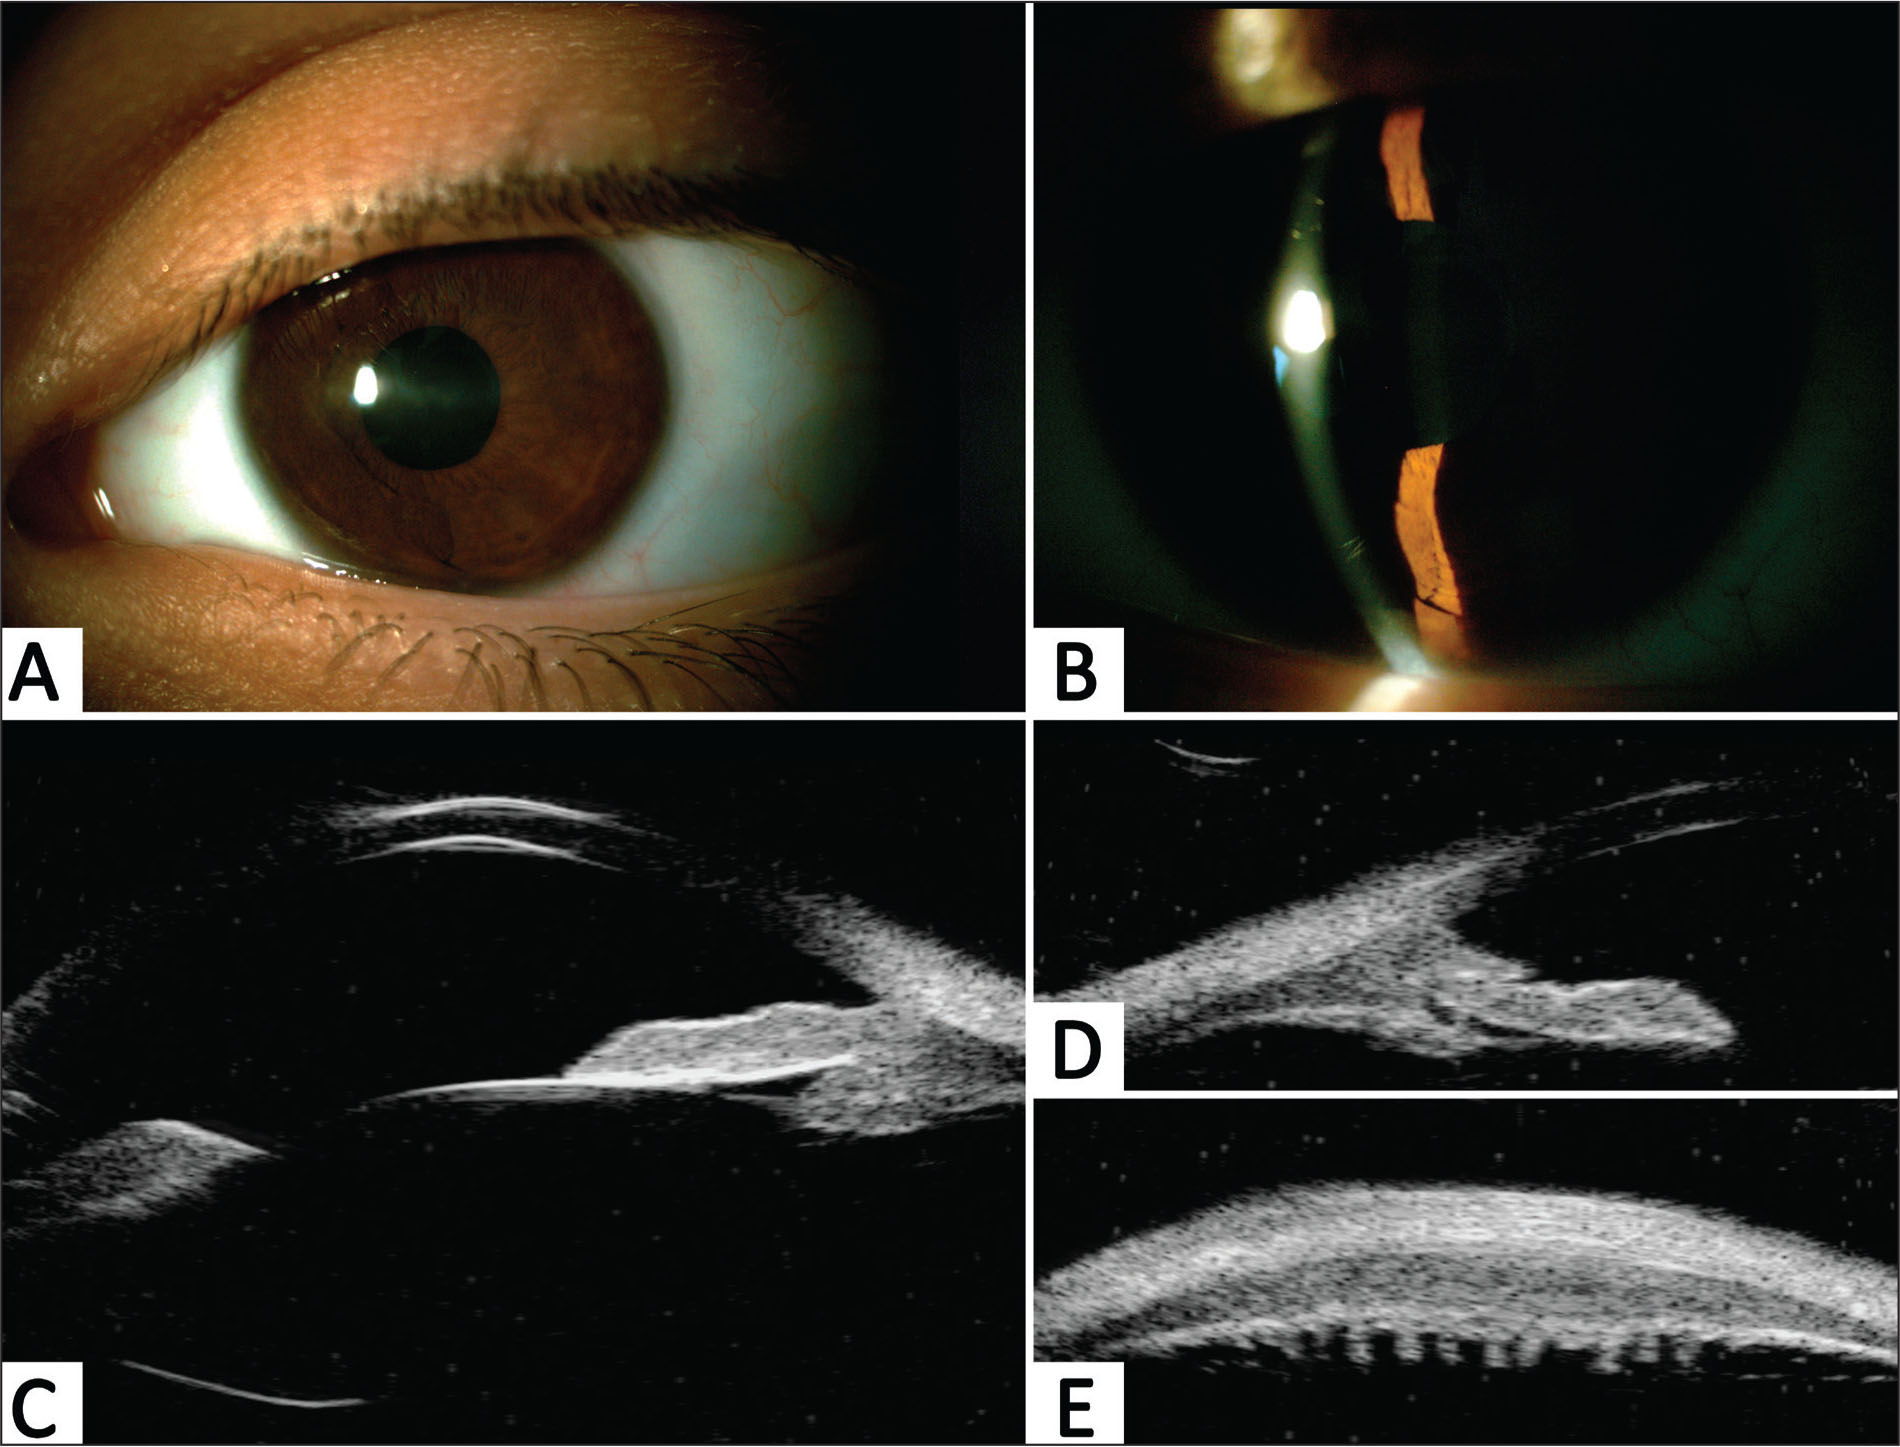 Left eye ophthalmological examination 2 months after the eighth intravitreal methotrexate injection. (A–B) Slit-lamp photographs showing improvement of iris color and morphology, without anterior chamber reaction. (C) Axial vertical, (D) 6-o'clock longitudinal, and (E) 6-o'clock transverse ultrasound biomicroscopy scans showing normal iris and ciliary body morphology.